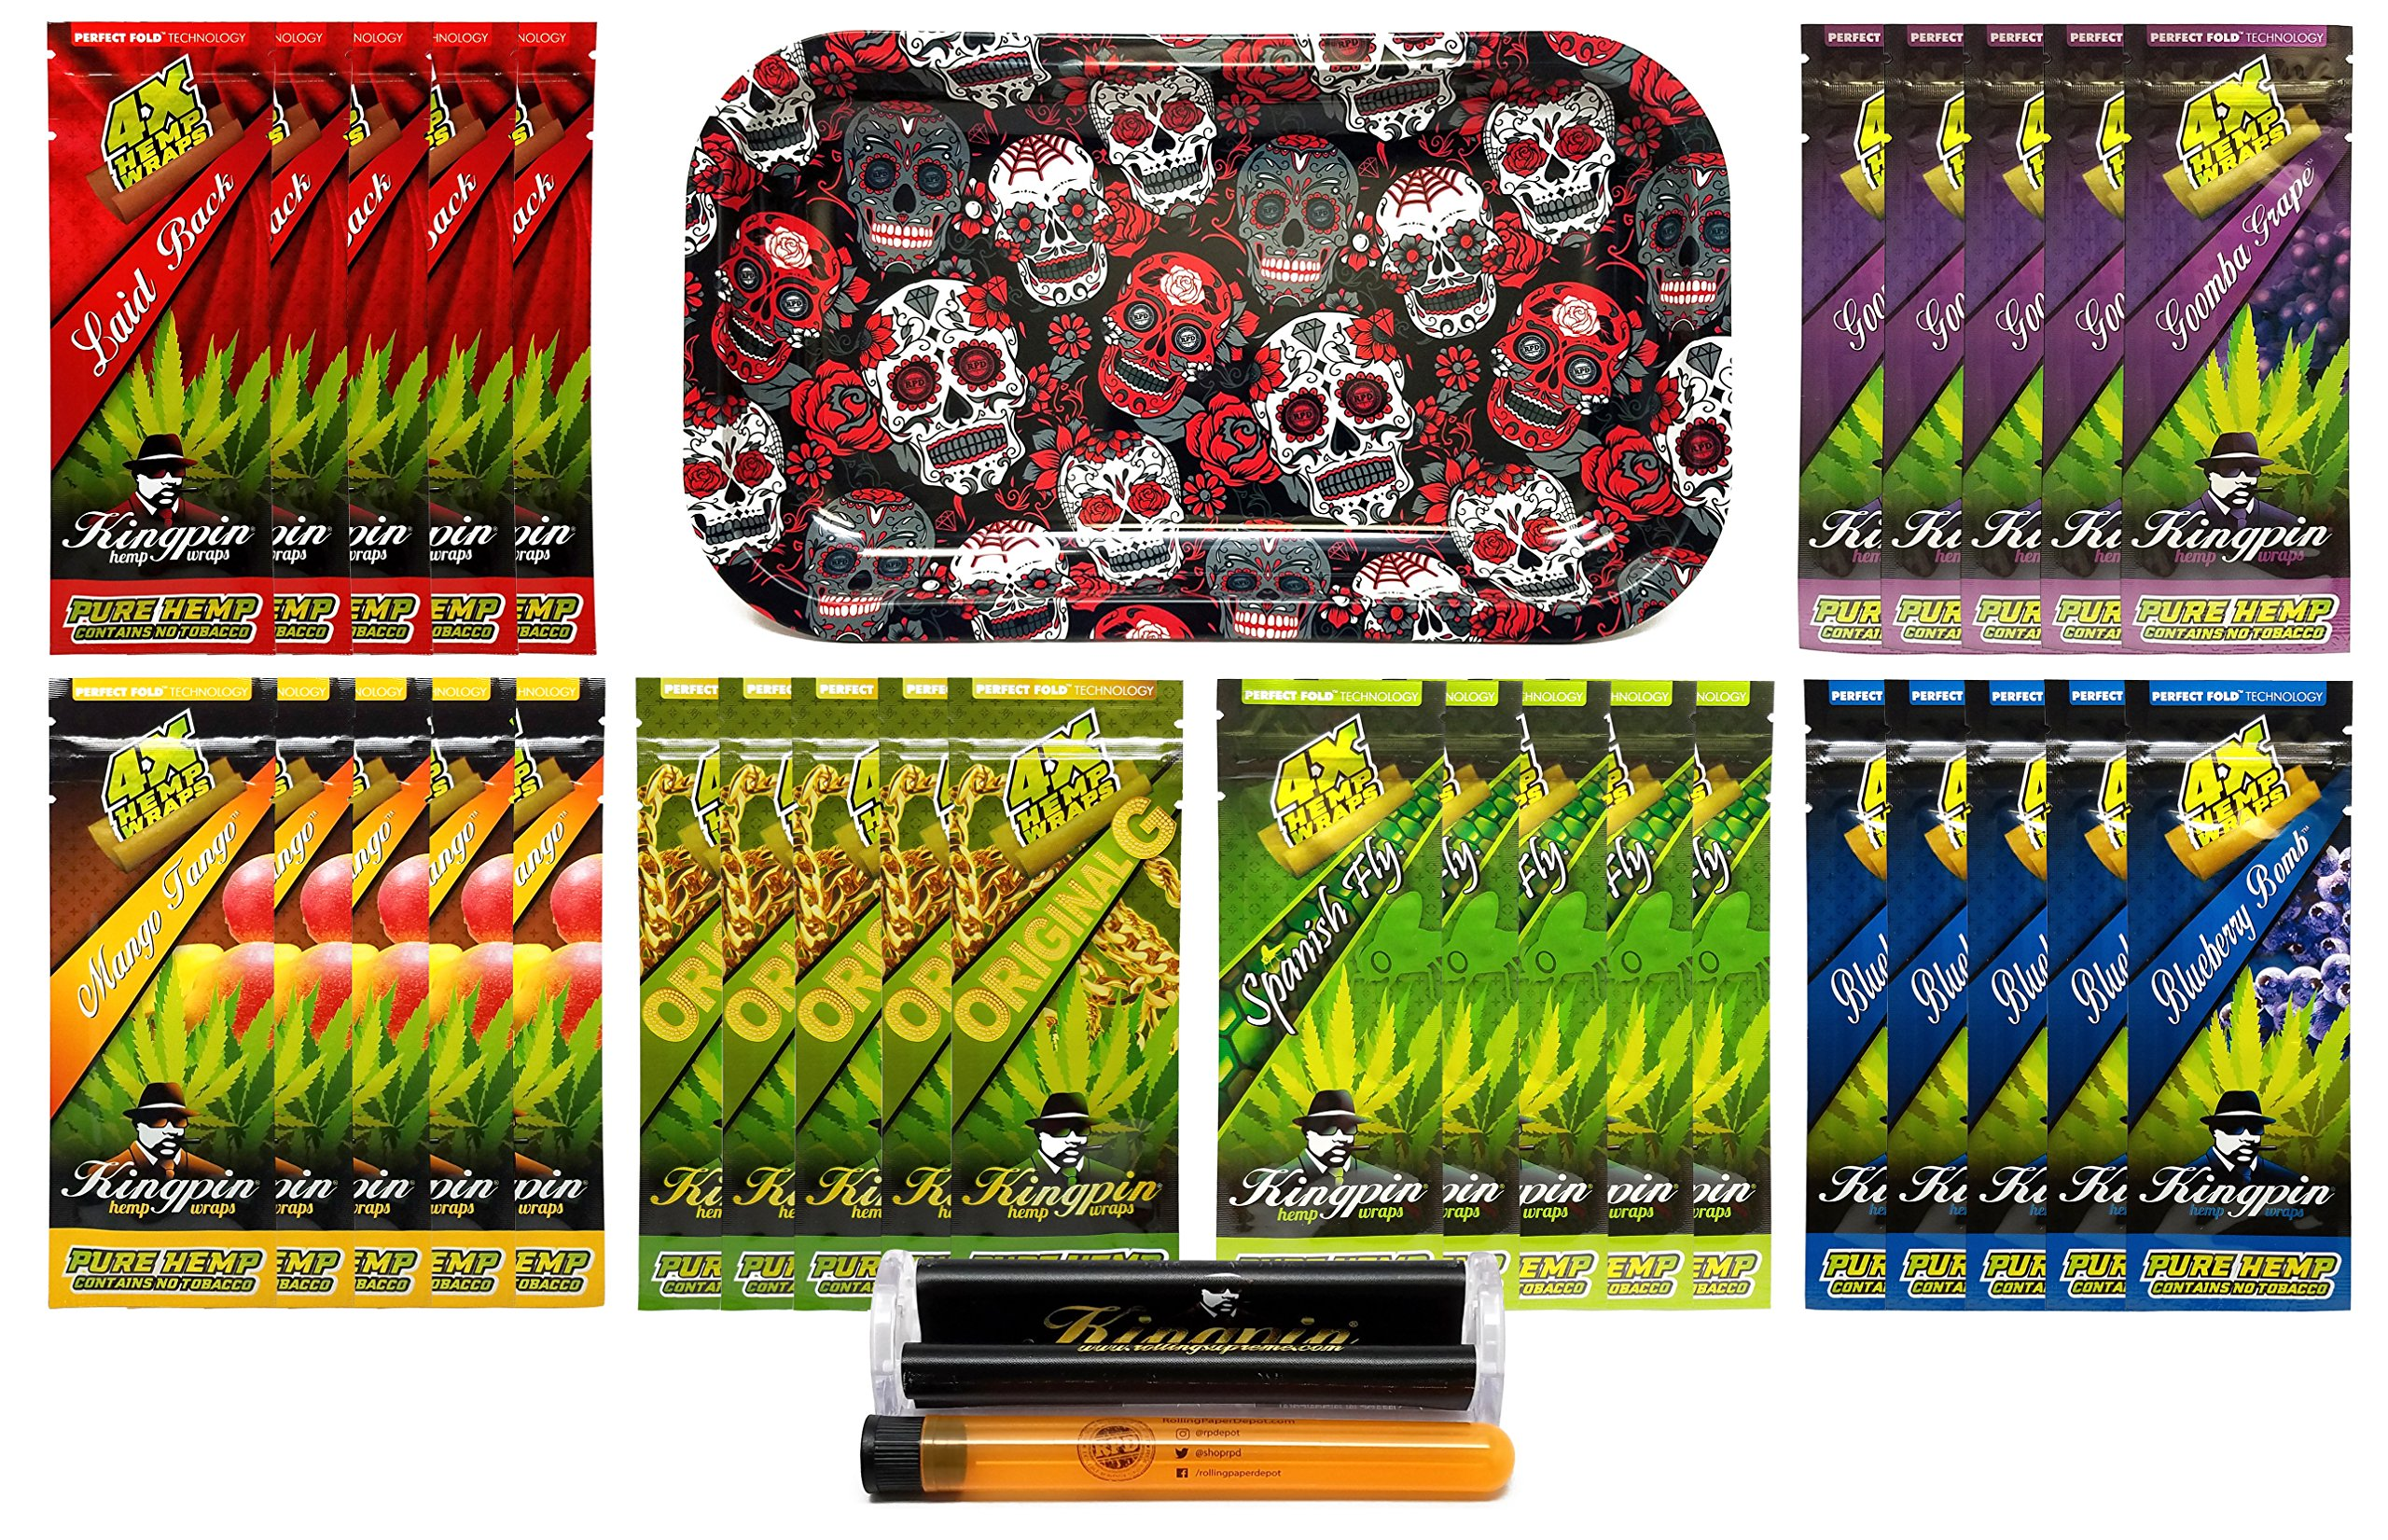 Bundle - 33 Items - Kingpin Flavored Hemp Wraps Sampler (6 Flavors, 5 Packs of Each) with Kingpin Wrap Roller, Rolling Paper Depot Rolling Tray (Skulls) and Doob Tube